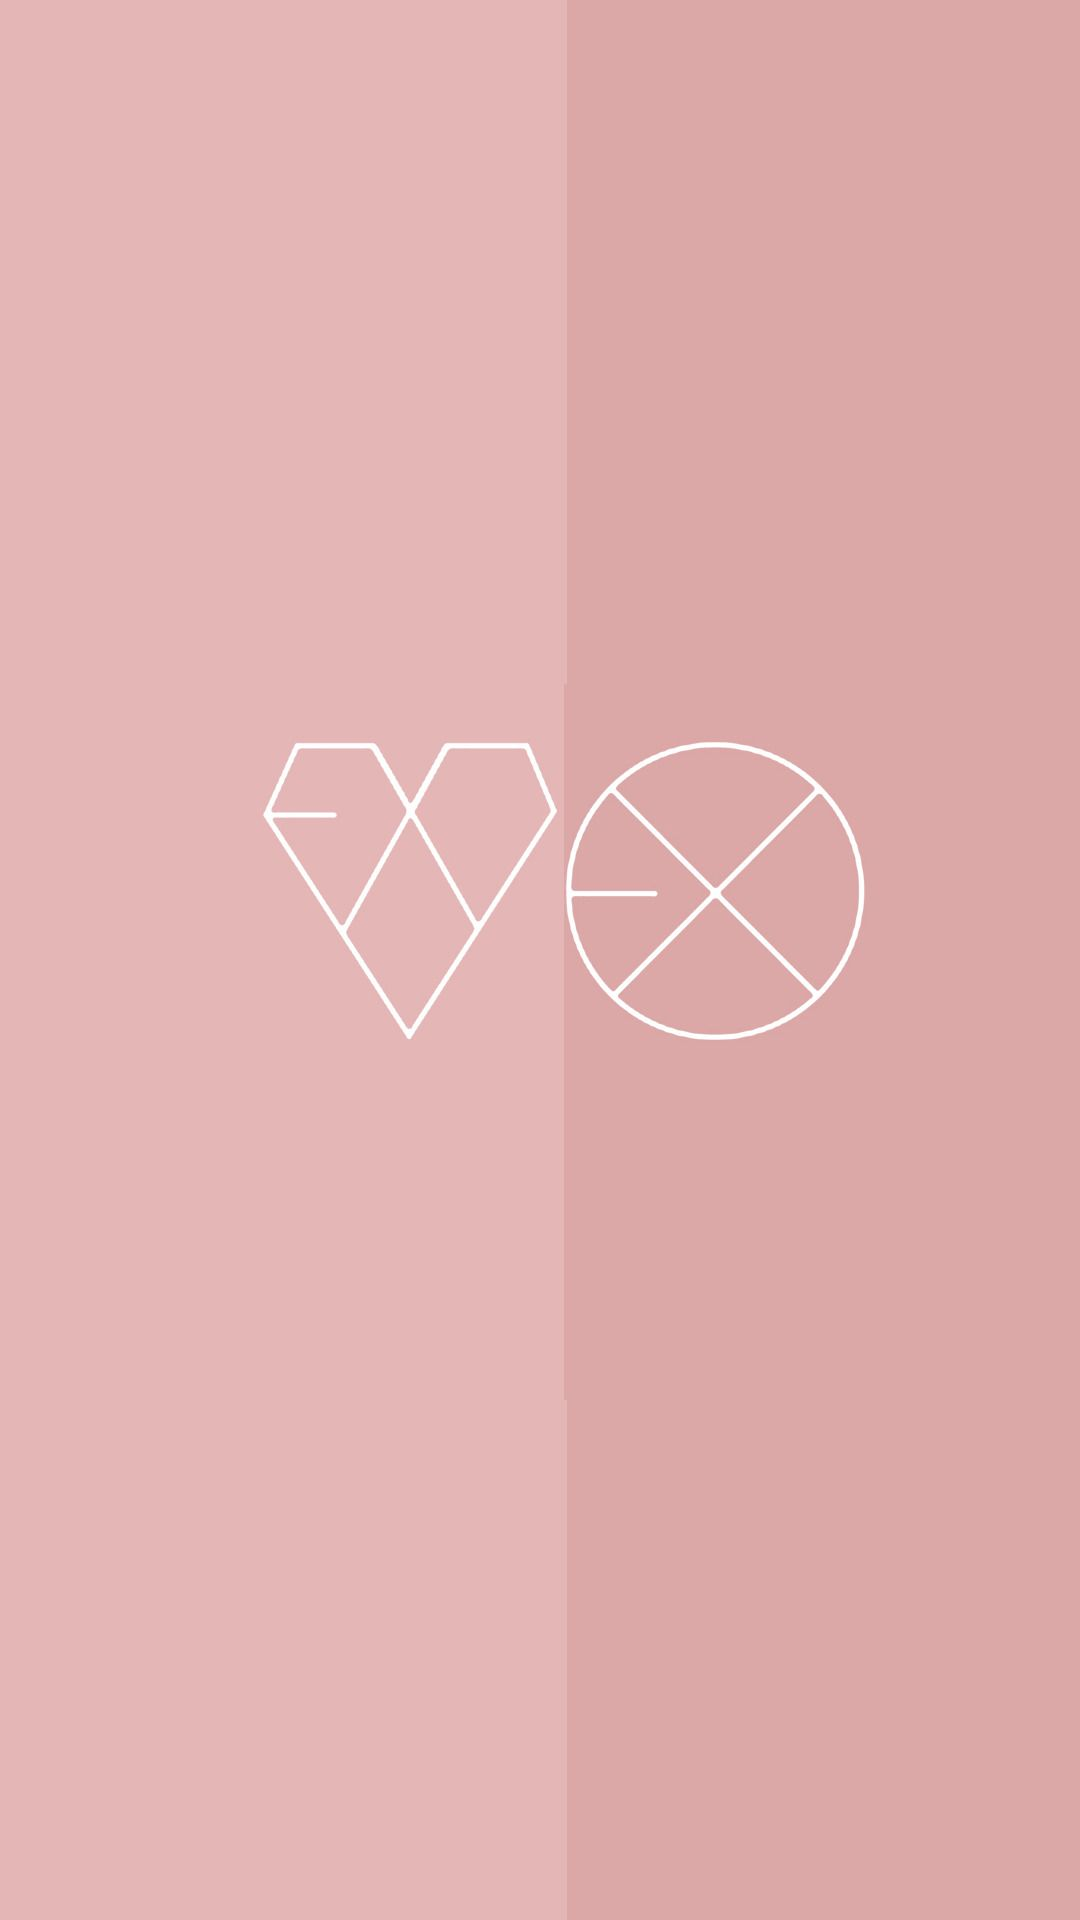 Exo Lockscreen Edits Tumblr Exo Lockscreen Aesthetic Wallpapers Exo Logo Wallpapers